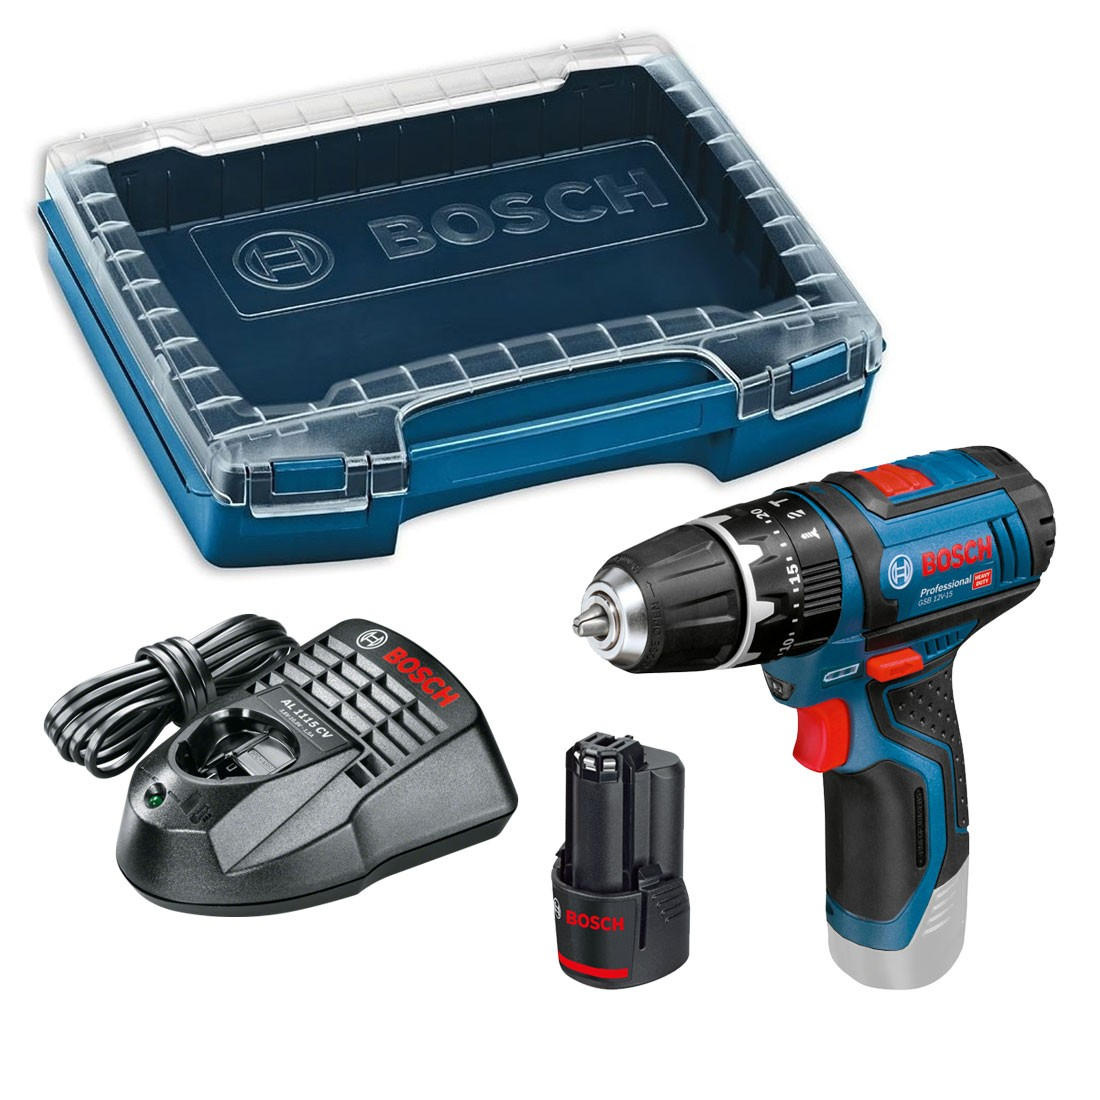 Bosch GSB 12V-15 (10.8-2-LI) Combi Drill inc 1x 2.0Ah Battery in iBoxx